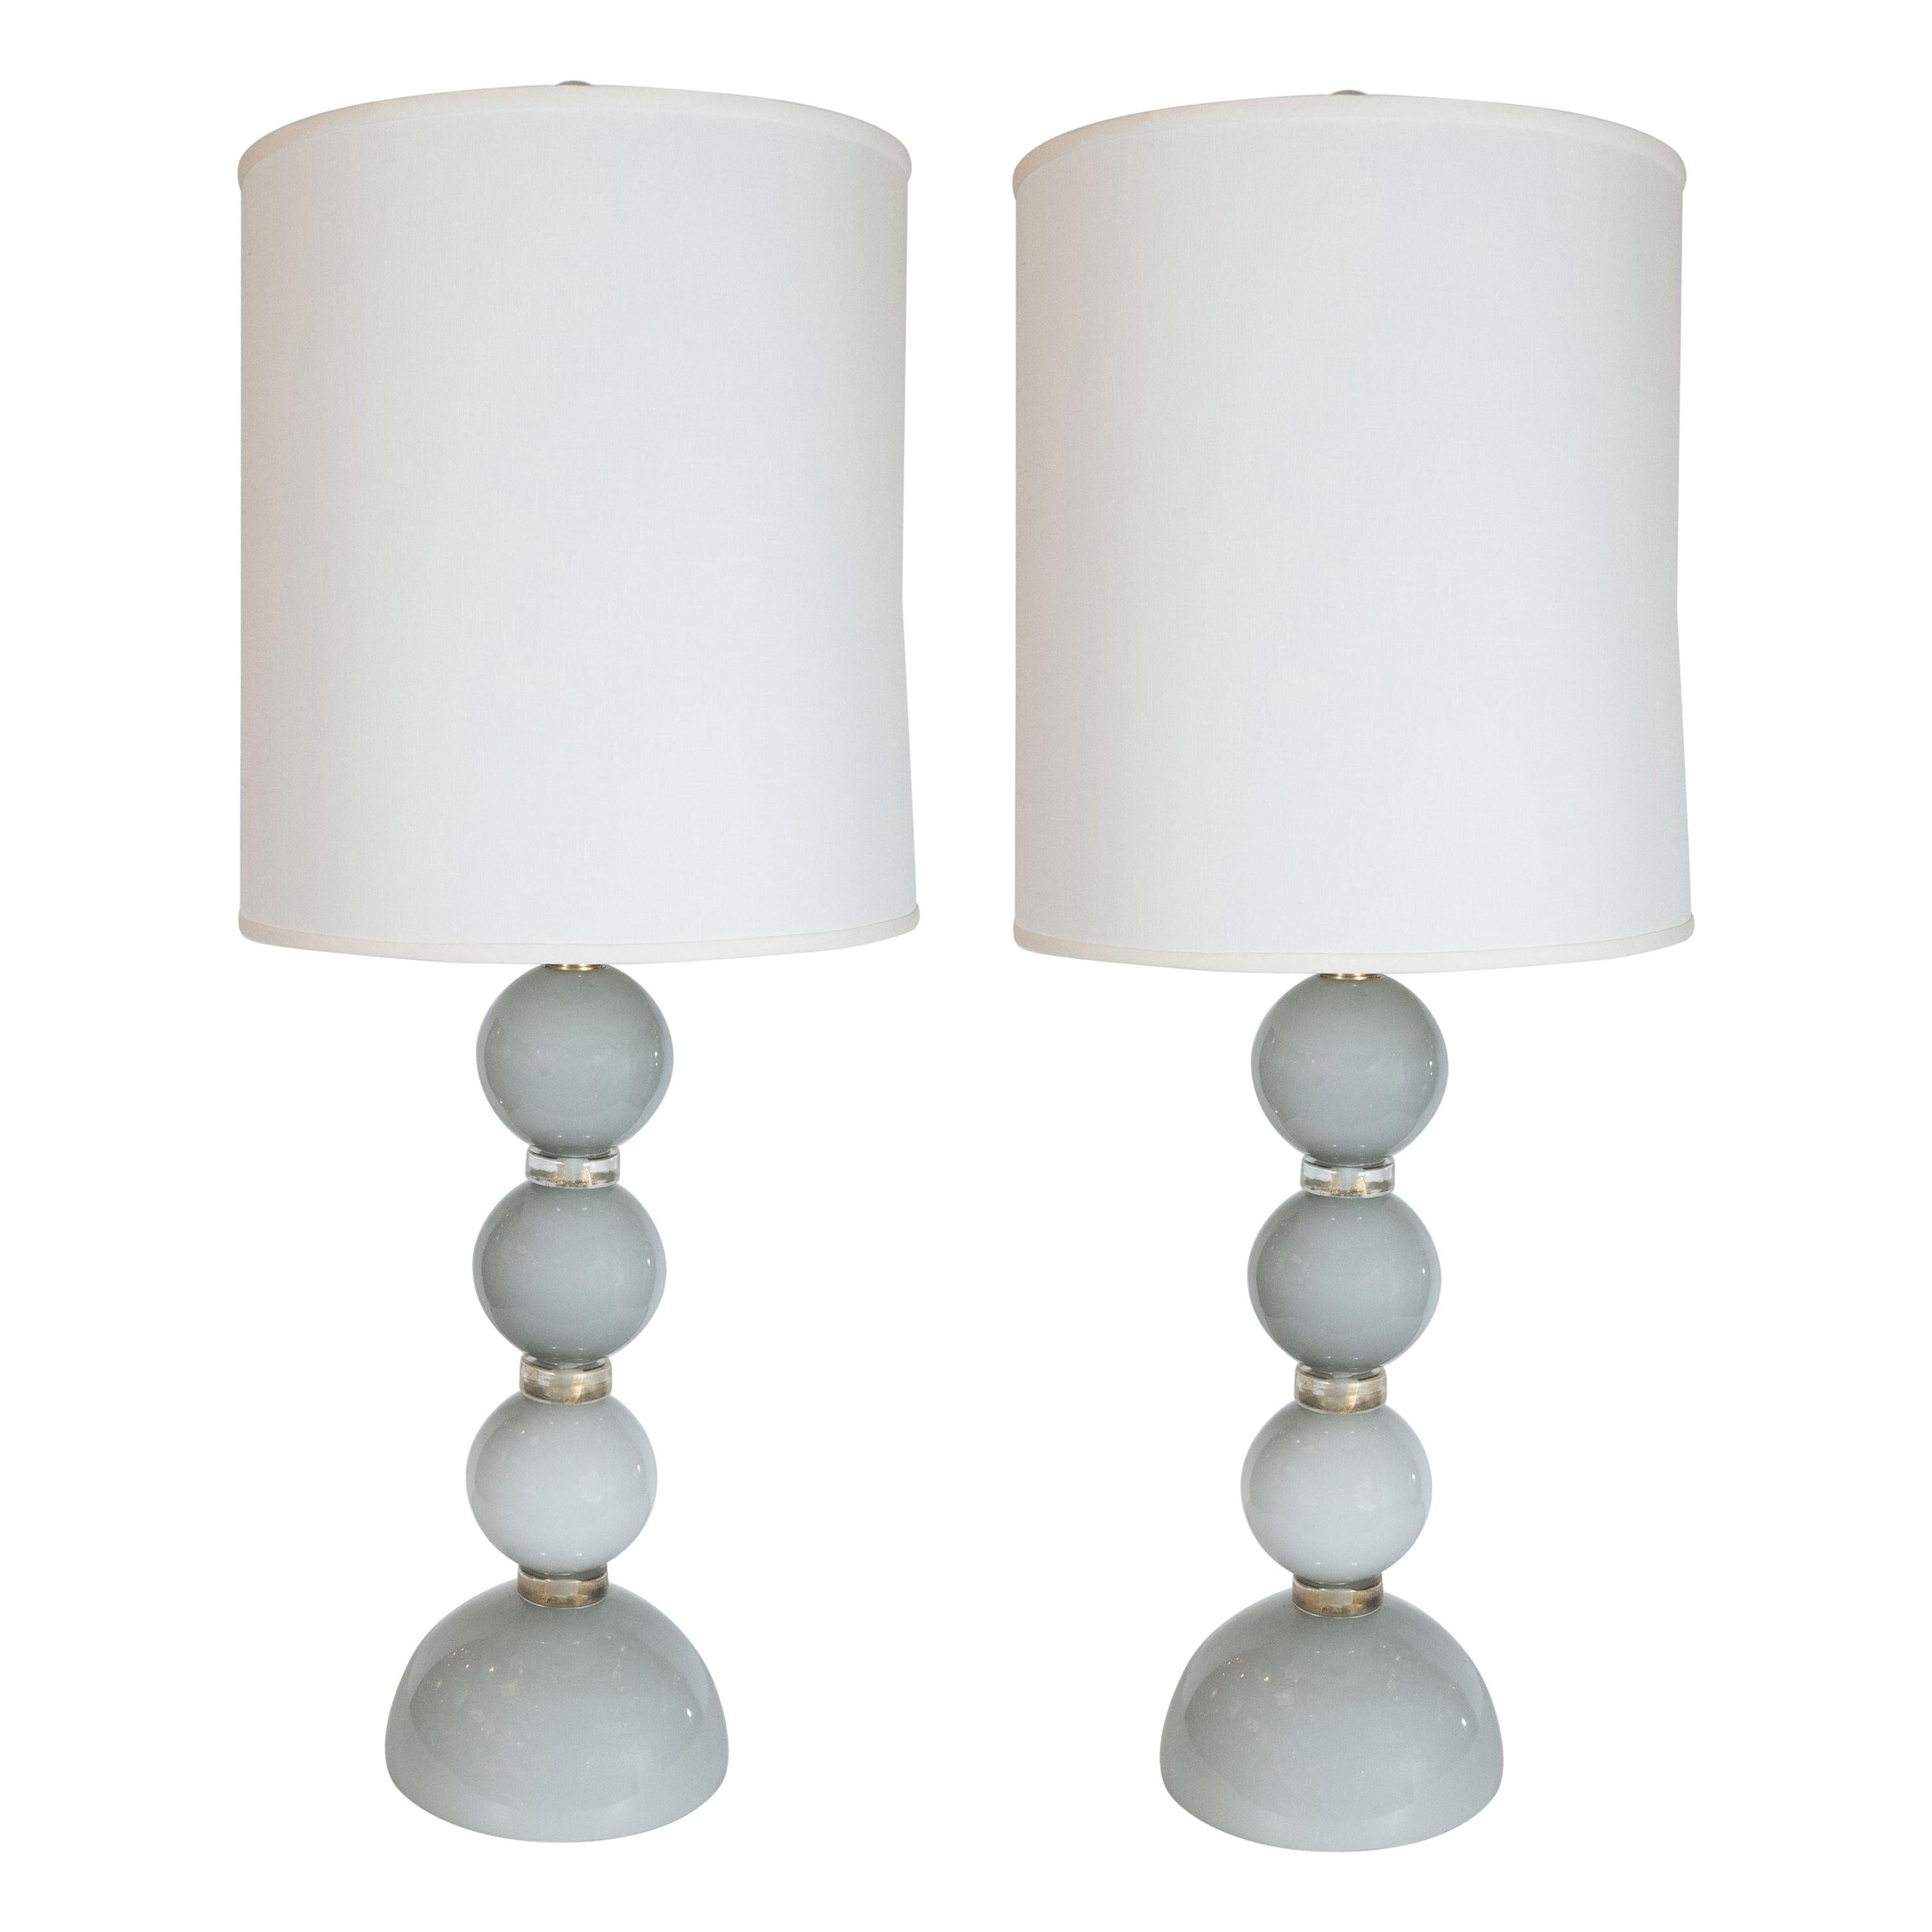 Pair of Modernist Dove Grey Murano Glass Table Lamps with 24-Karat Gold Bands